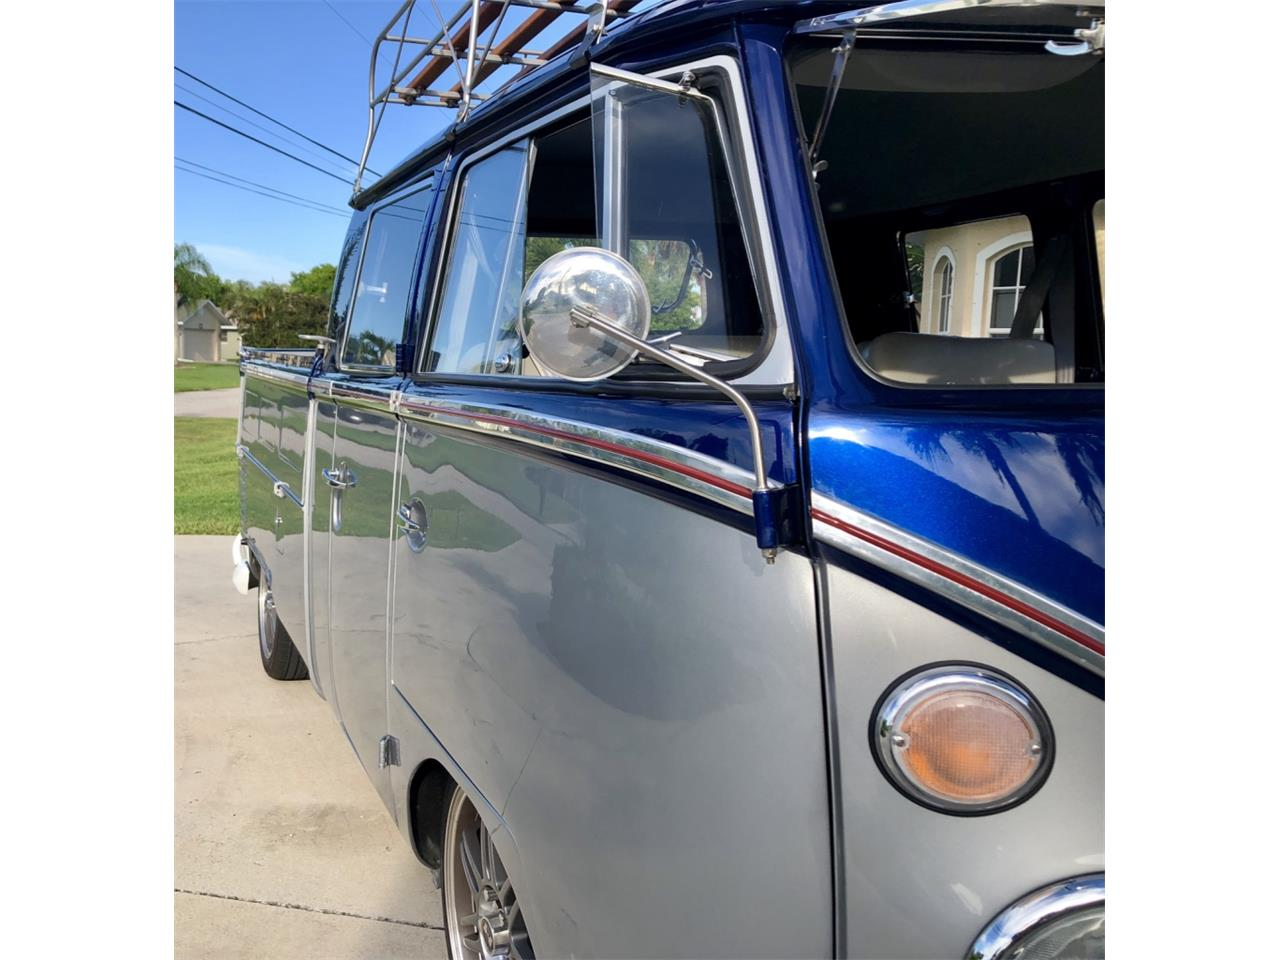 Large Picture of '63 Volkswagen Double Cab located in Ormond Beach Florida - $68,000.00 Offered by a Private Seller - PJFH